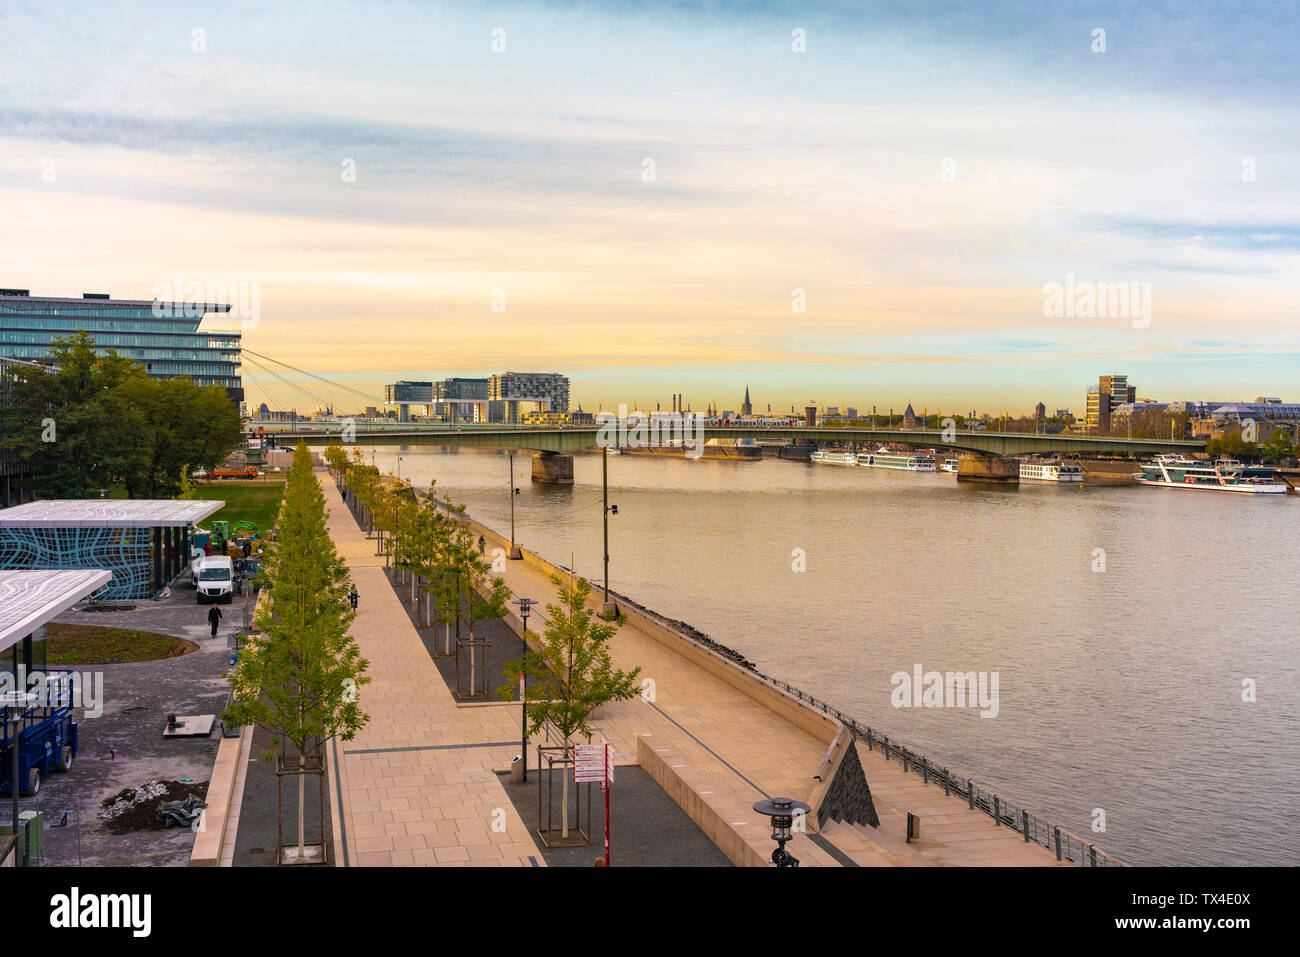 Germany, Cologne, Deutz, promenade at River Rhine - Stock Image